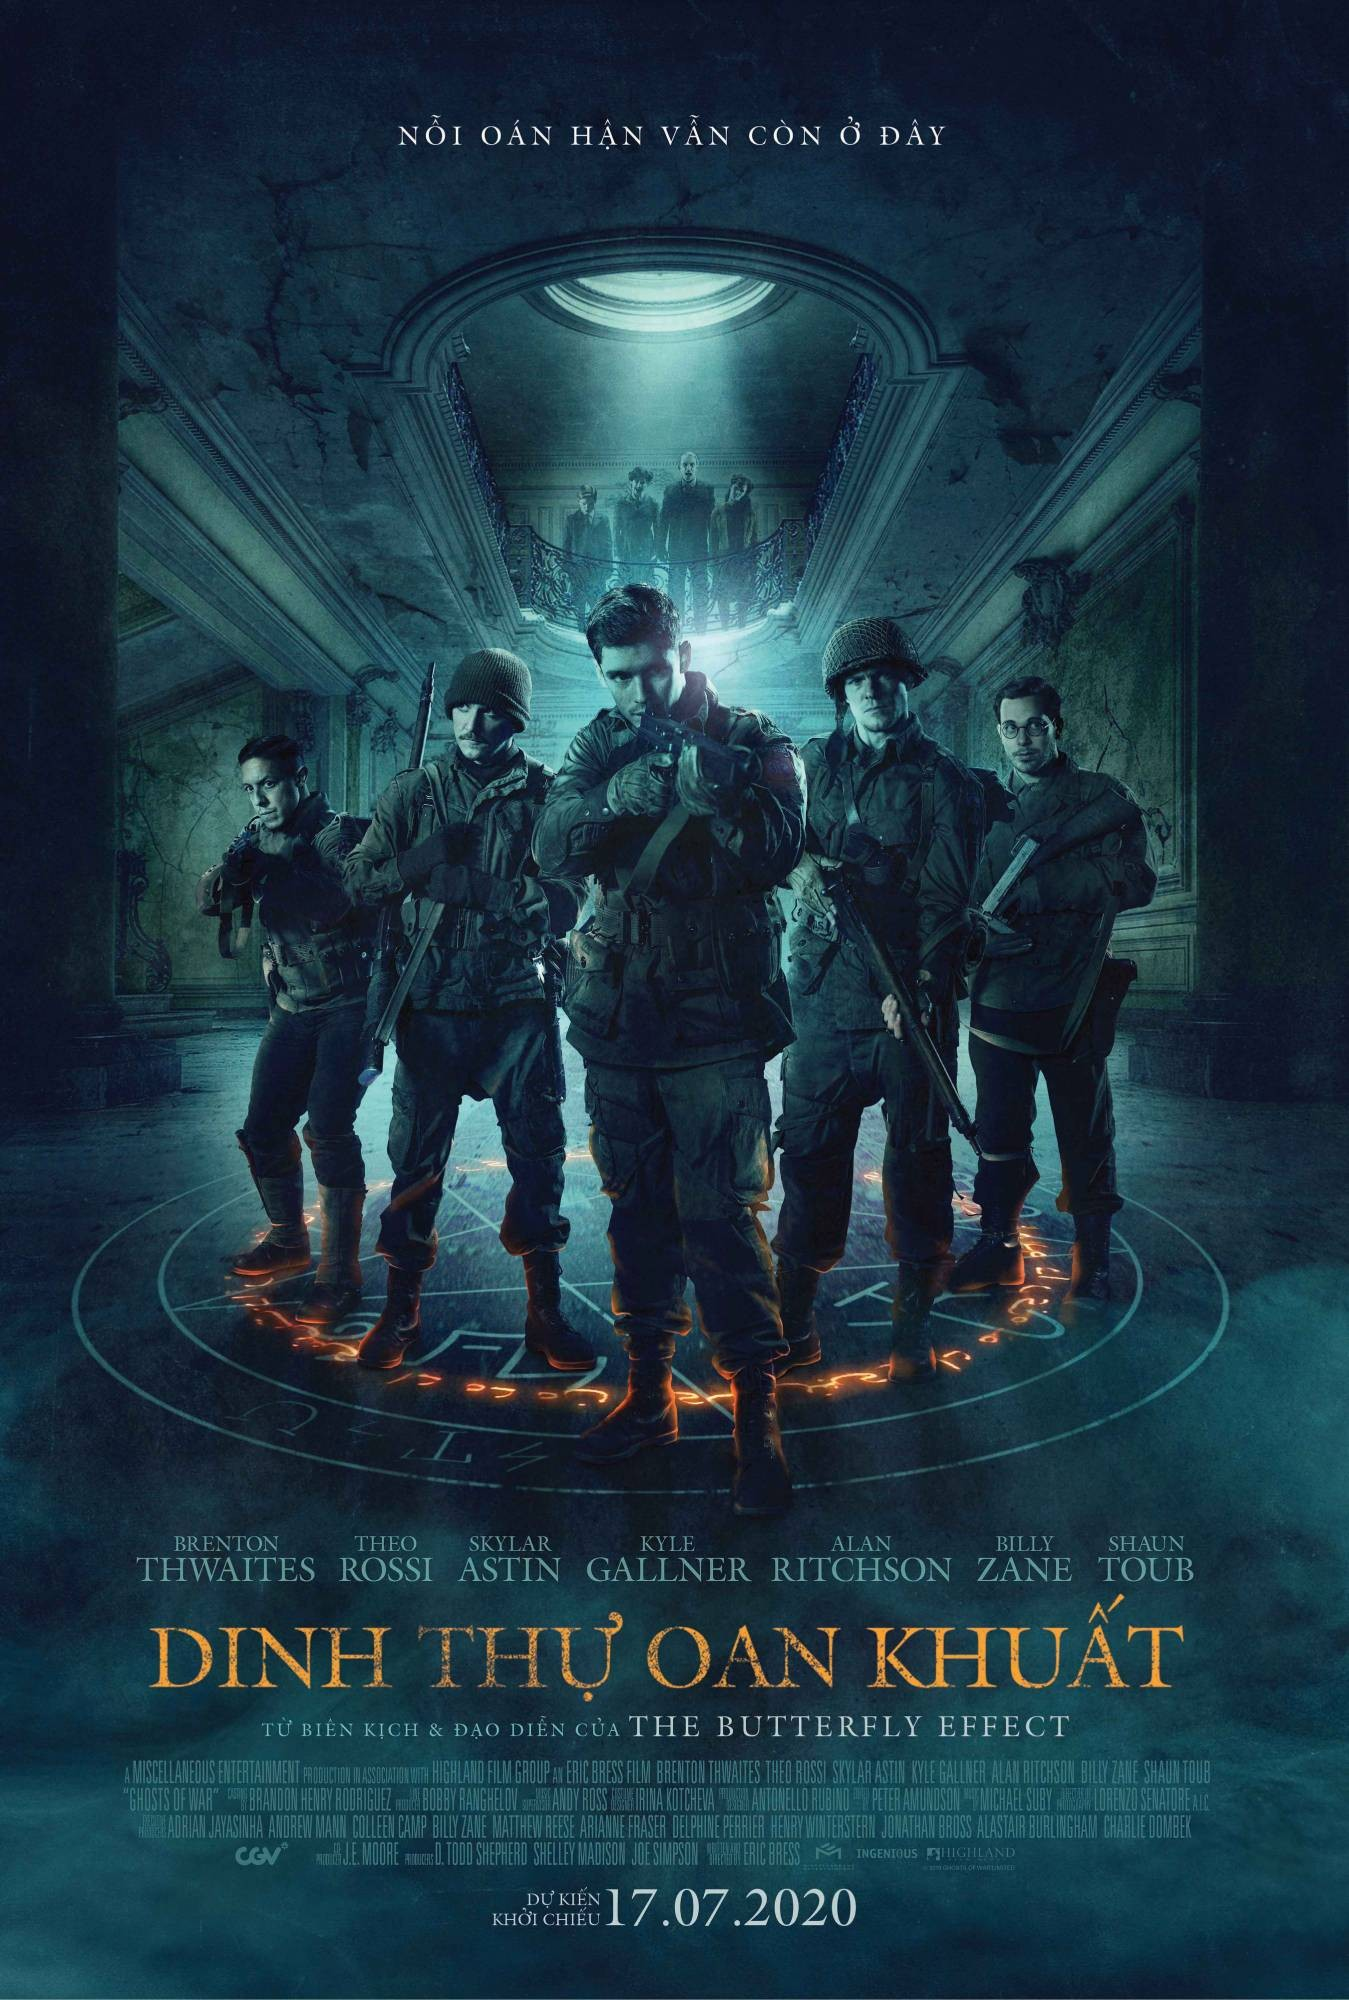 321 - Ghosts Of War 2020 - Dinh Thự Oan Khuất